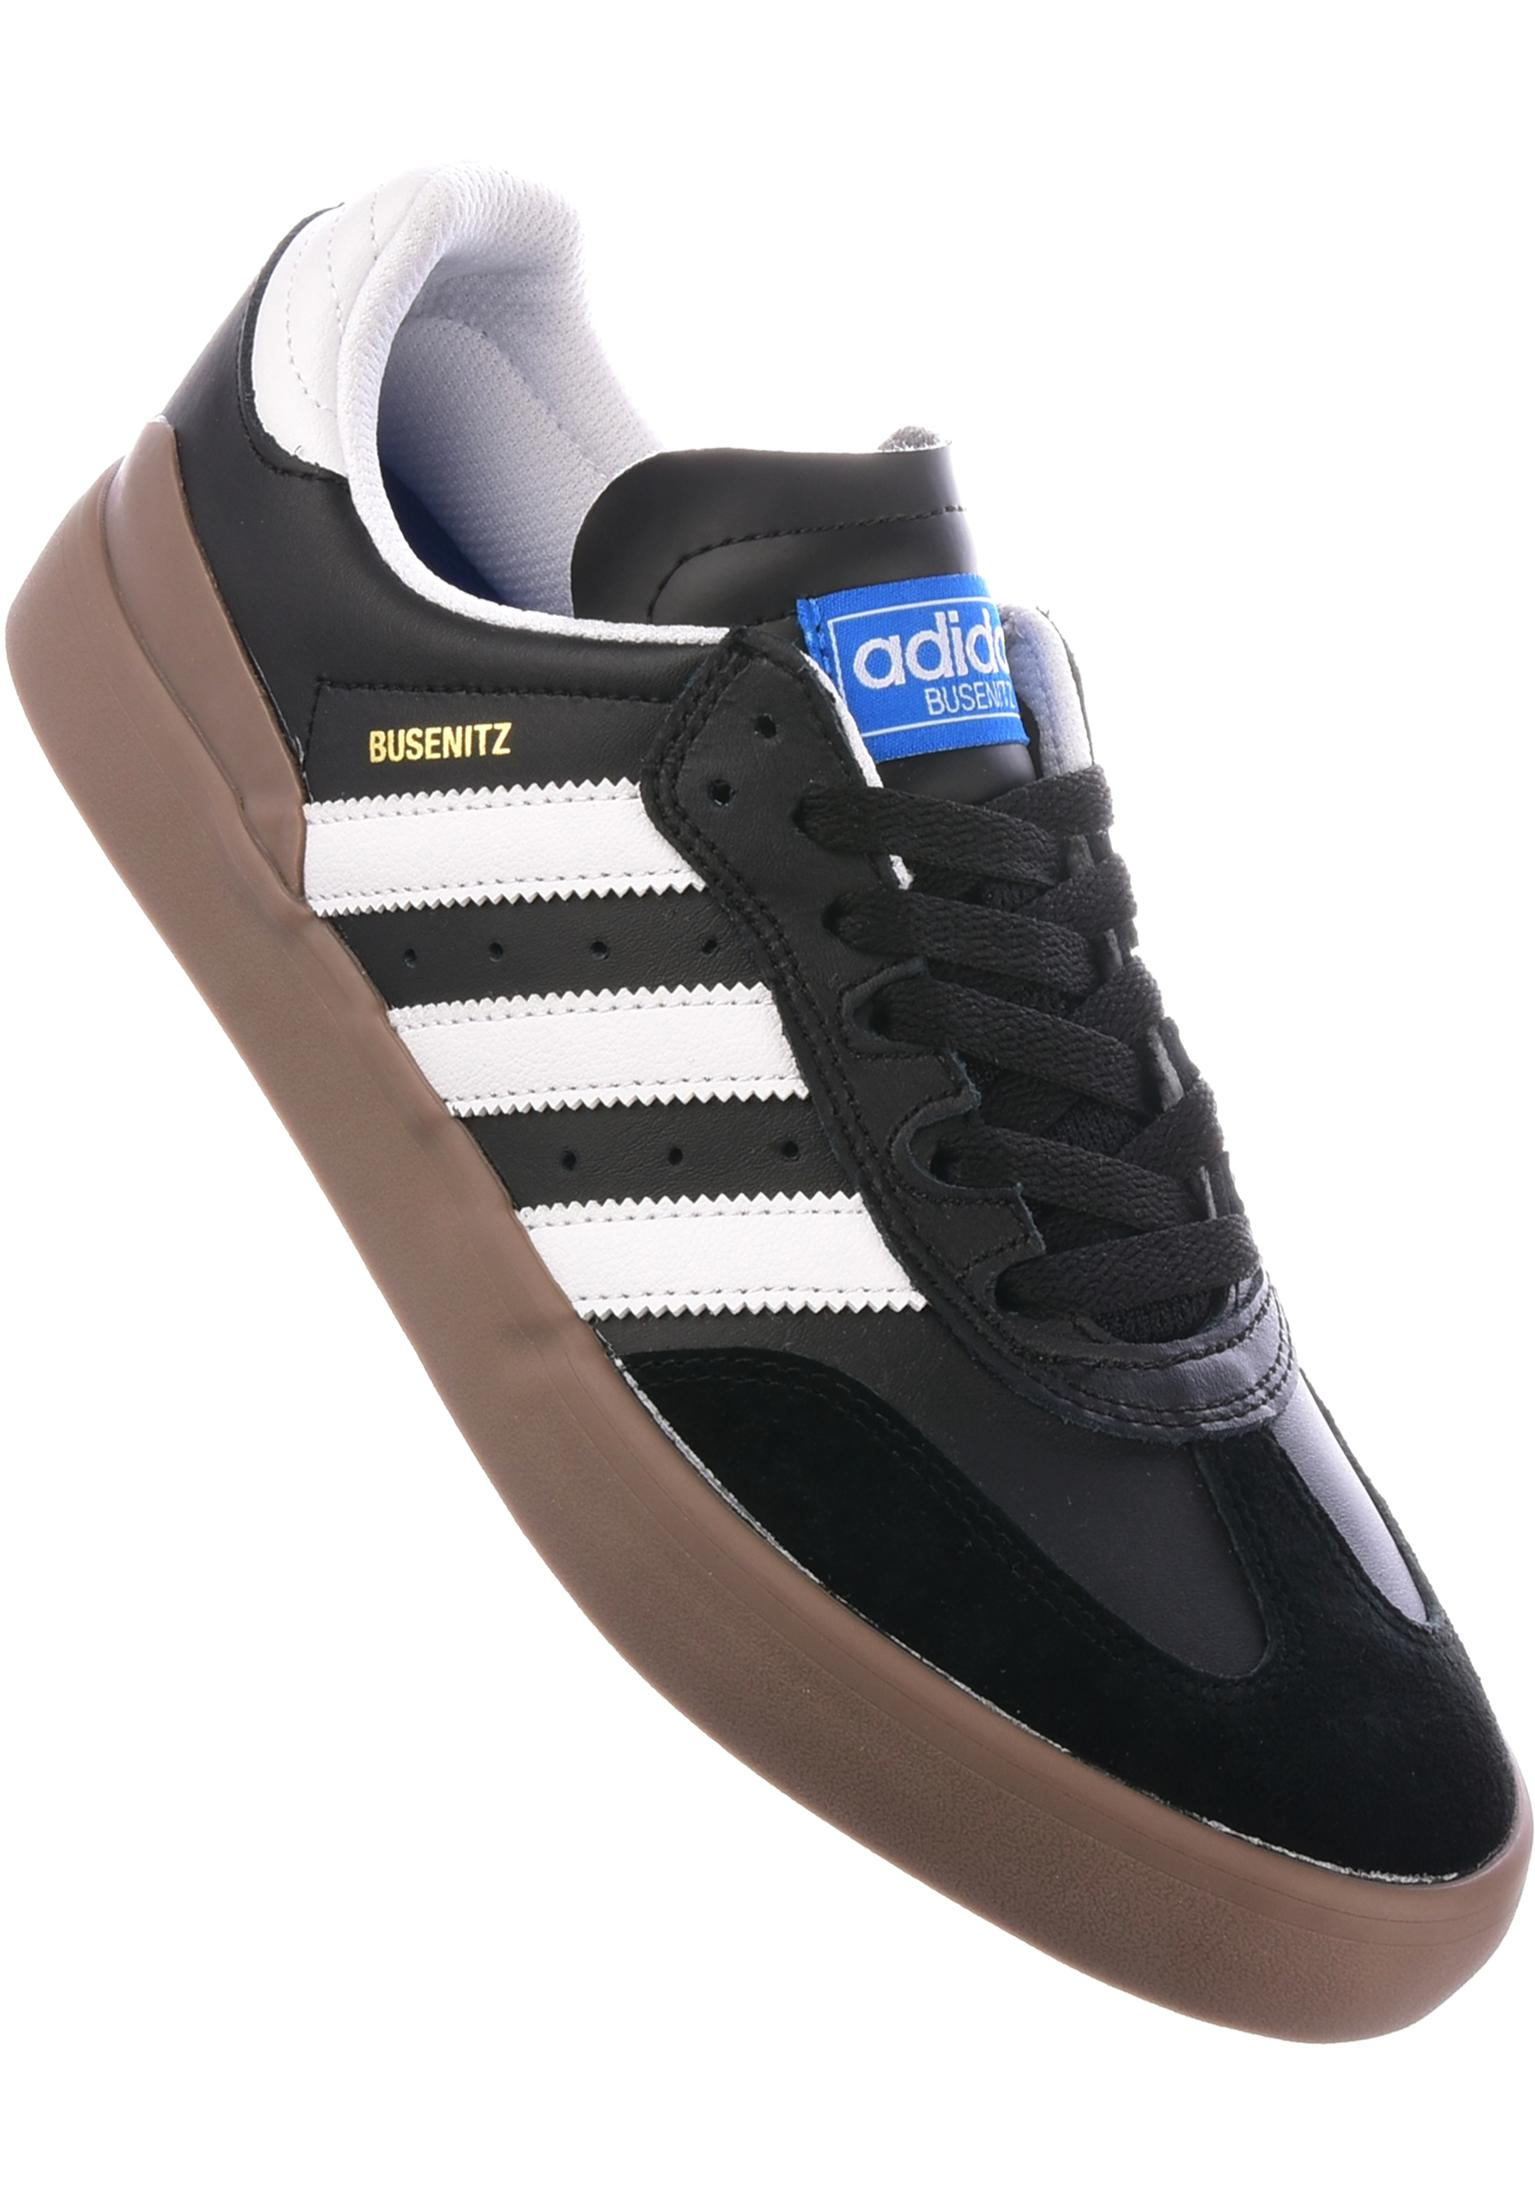 Busenitz Vulc RX adidas-skateboarding All Shoes in coreblack-white-gum for  Men  f604db9b6